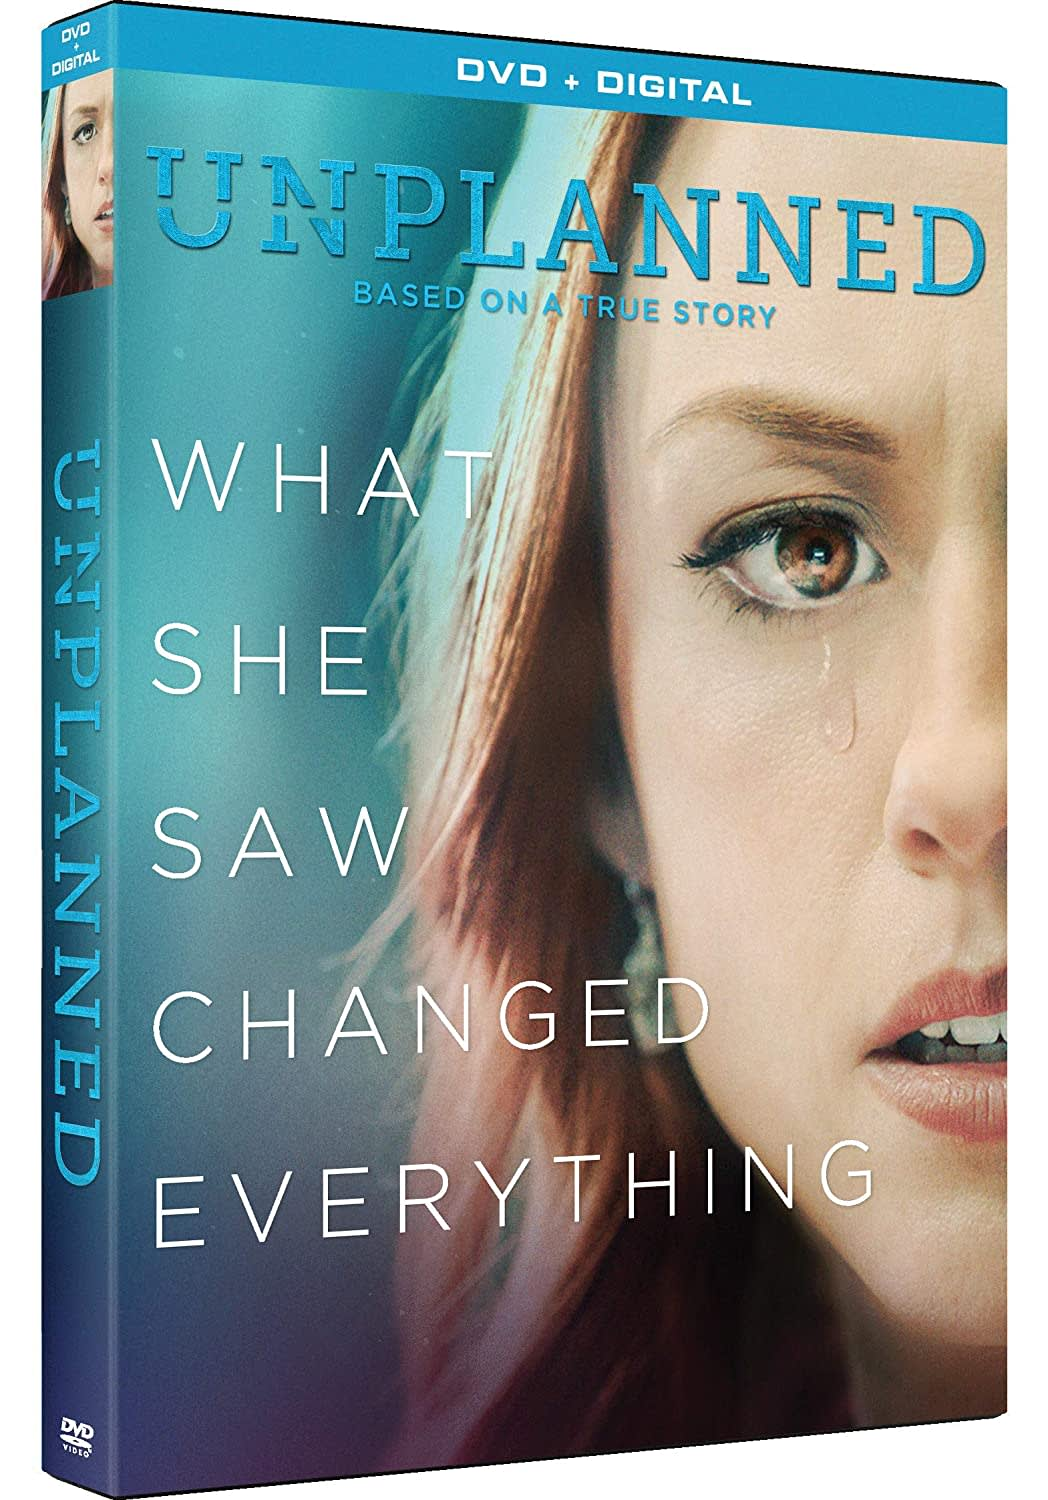 Unplanned (DVD + Digital) [DVD]